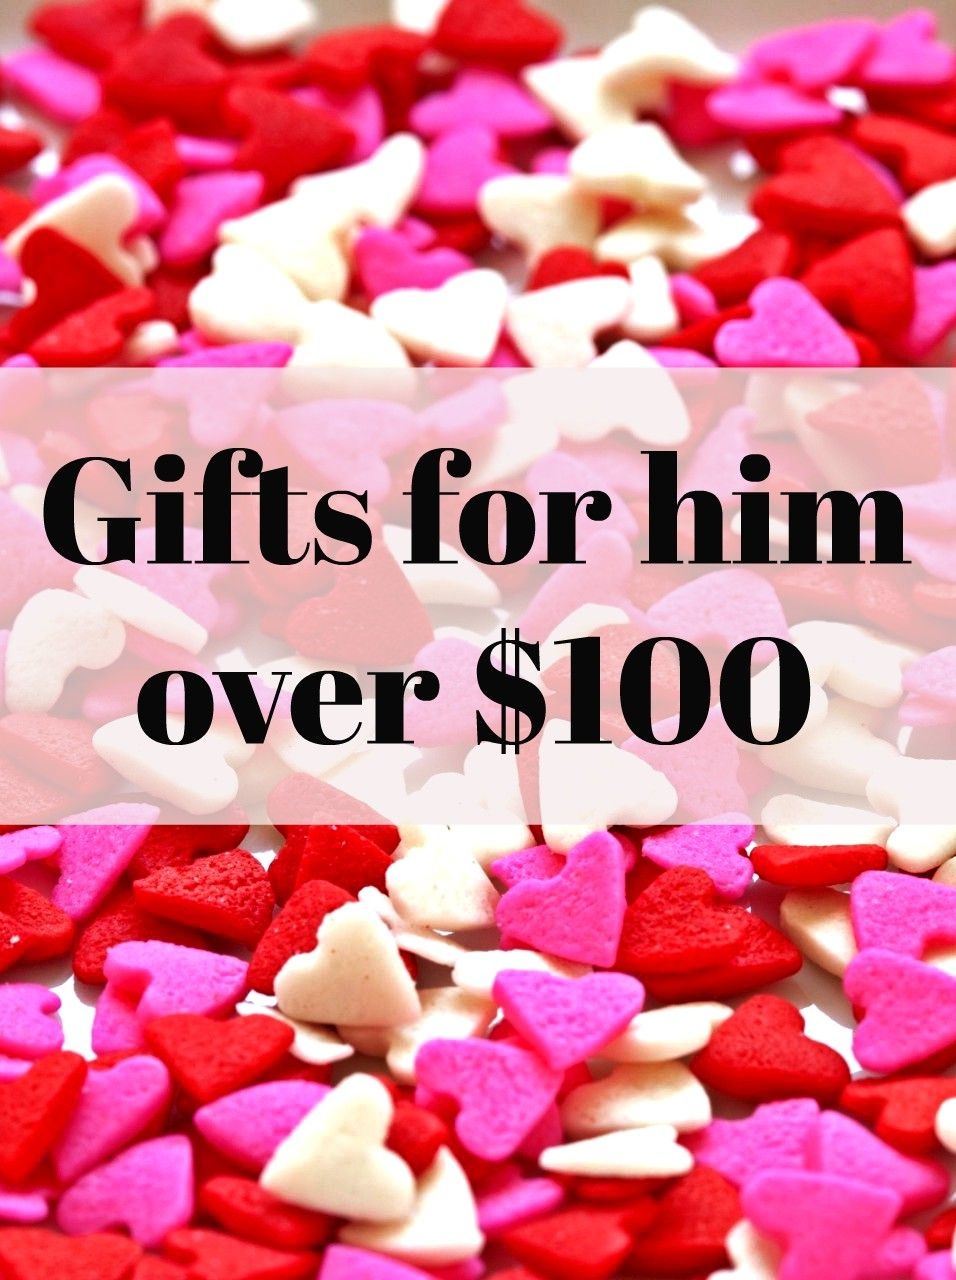 Quality Valentine S Day Gifts Your Boyfriend Or Husband Will Love